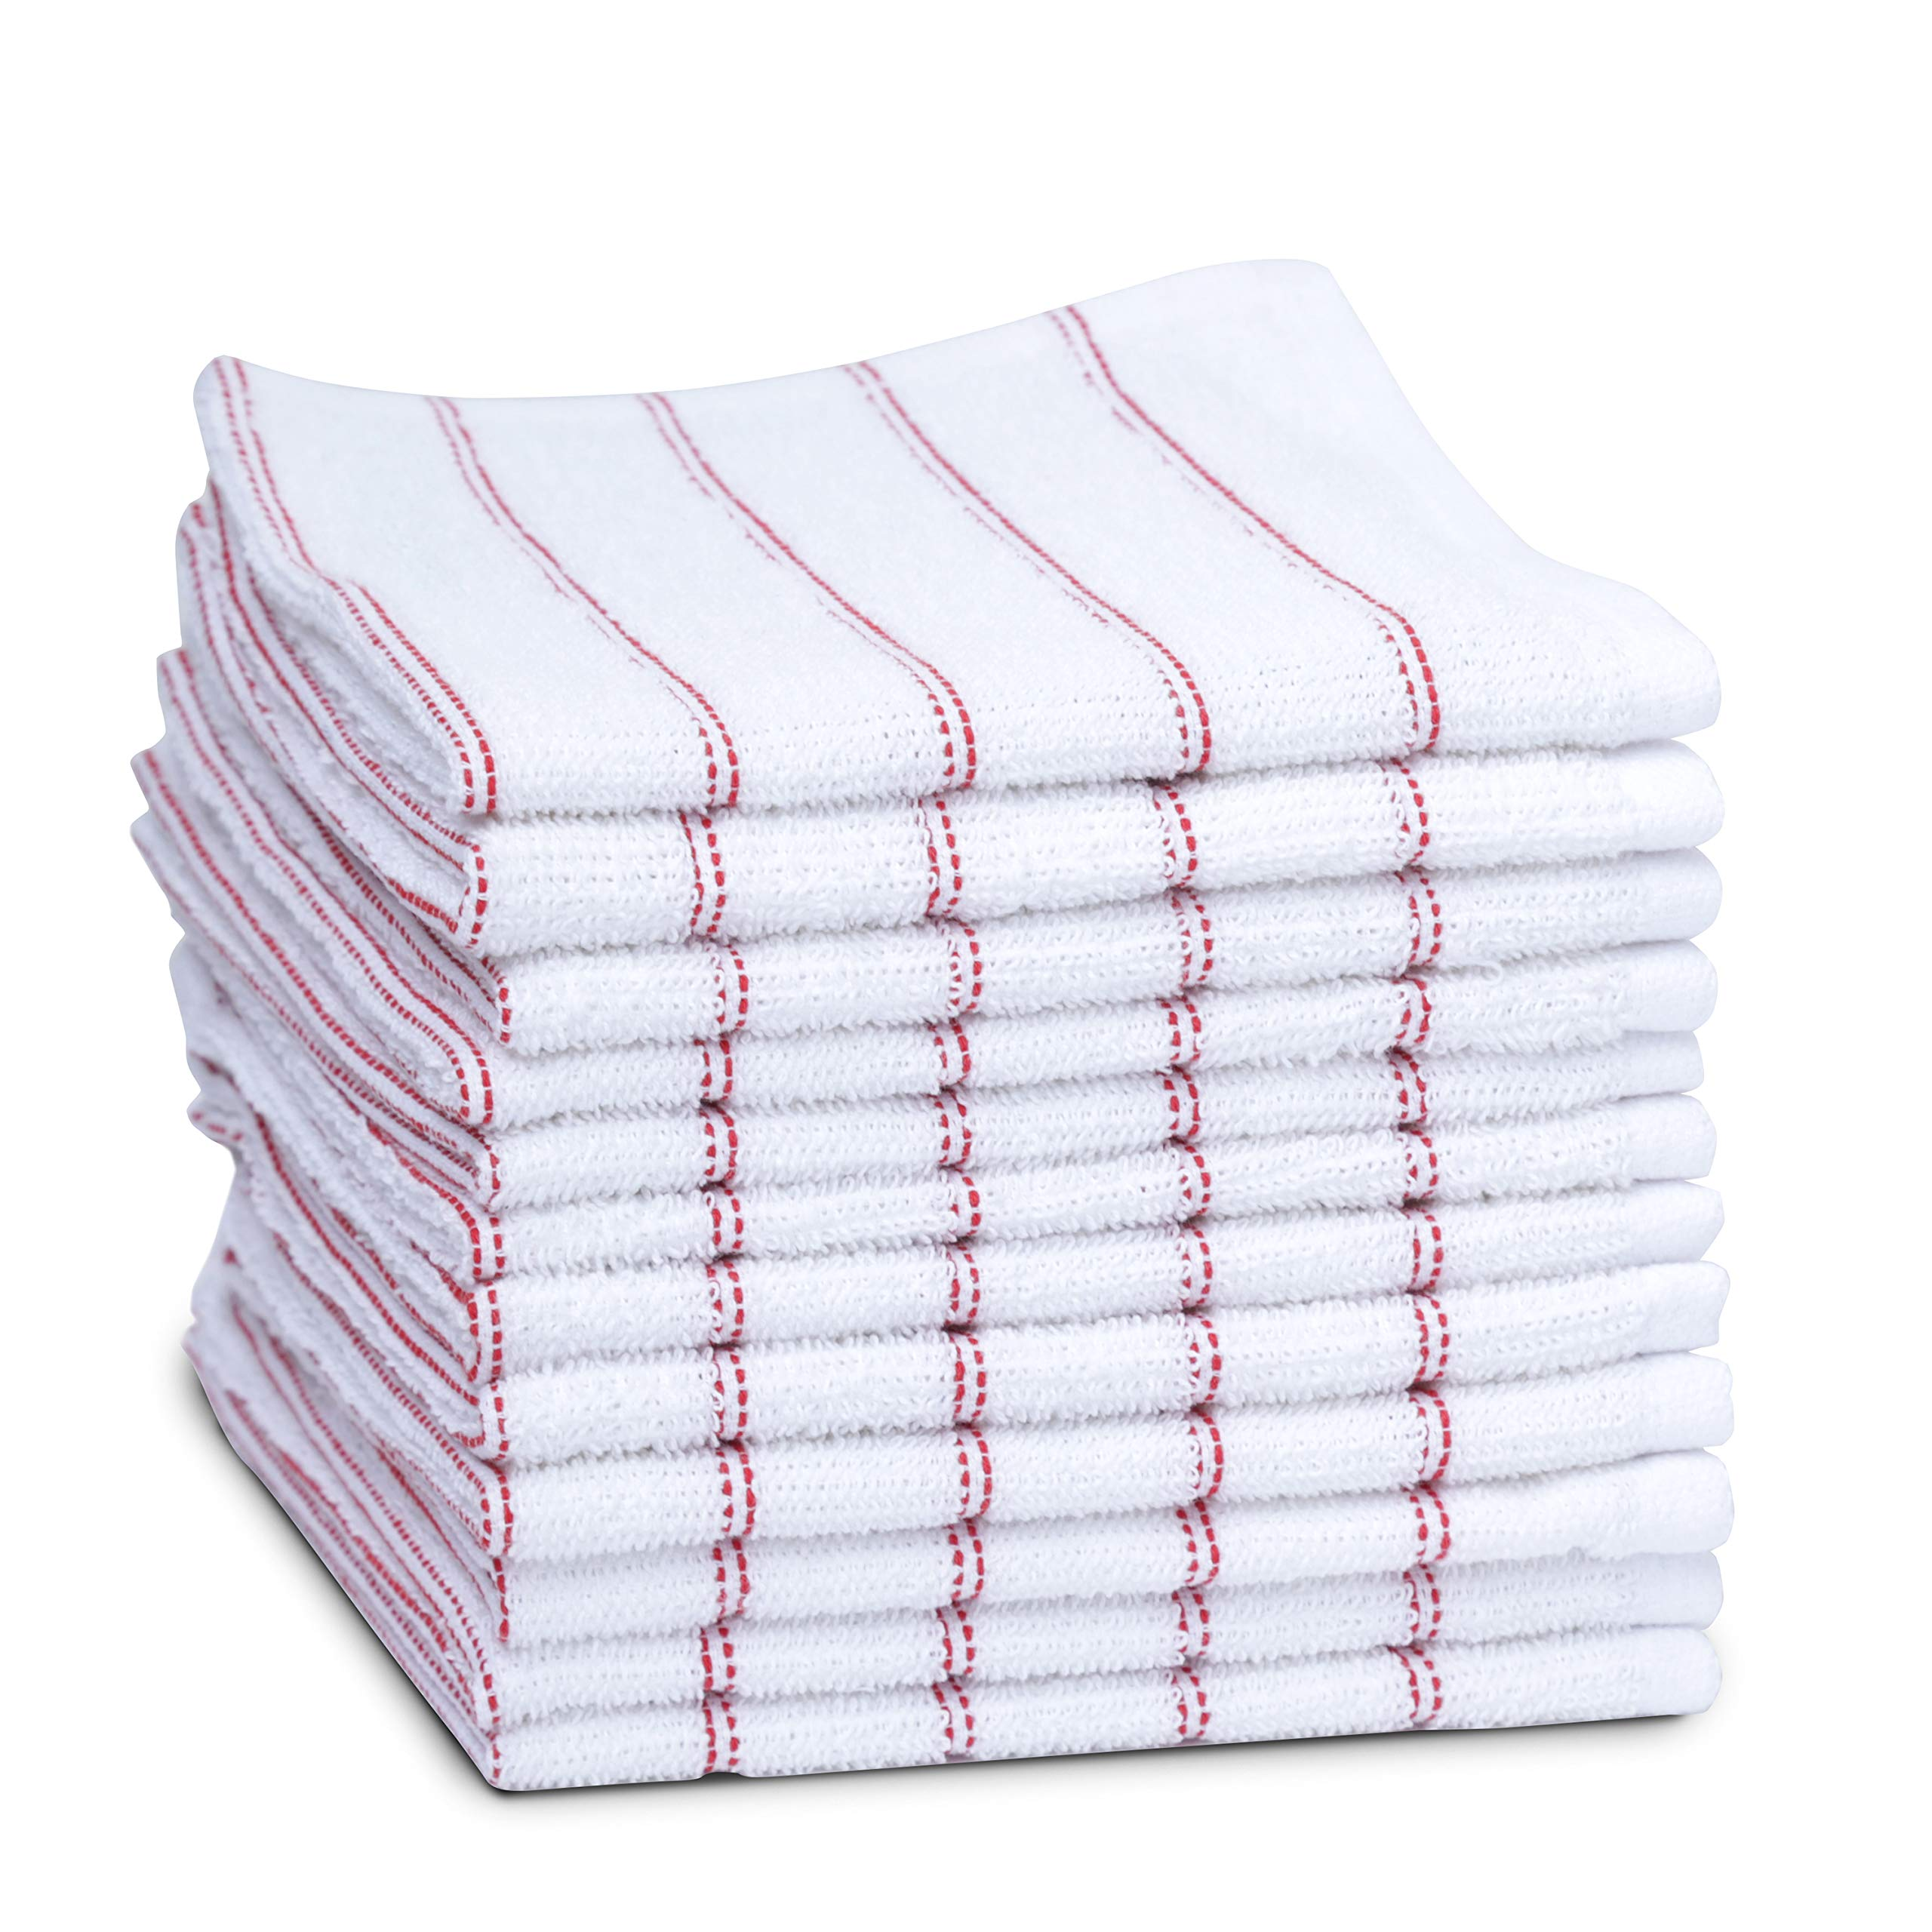 maspar Dish Towels, 100% Cotton, 12 x12 inch, White with Red Stripe, Terry, Woven, Absorbent, Quick Dry, Chemical Free, Machine Washable, 12 Pack Set by maspar